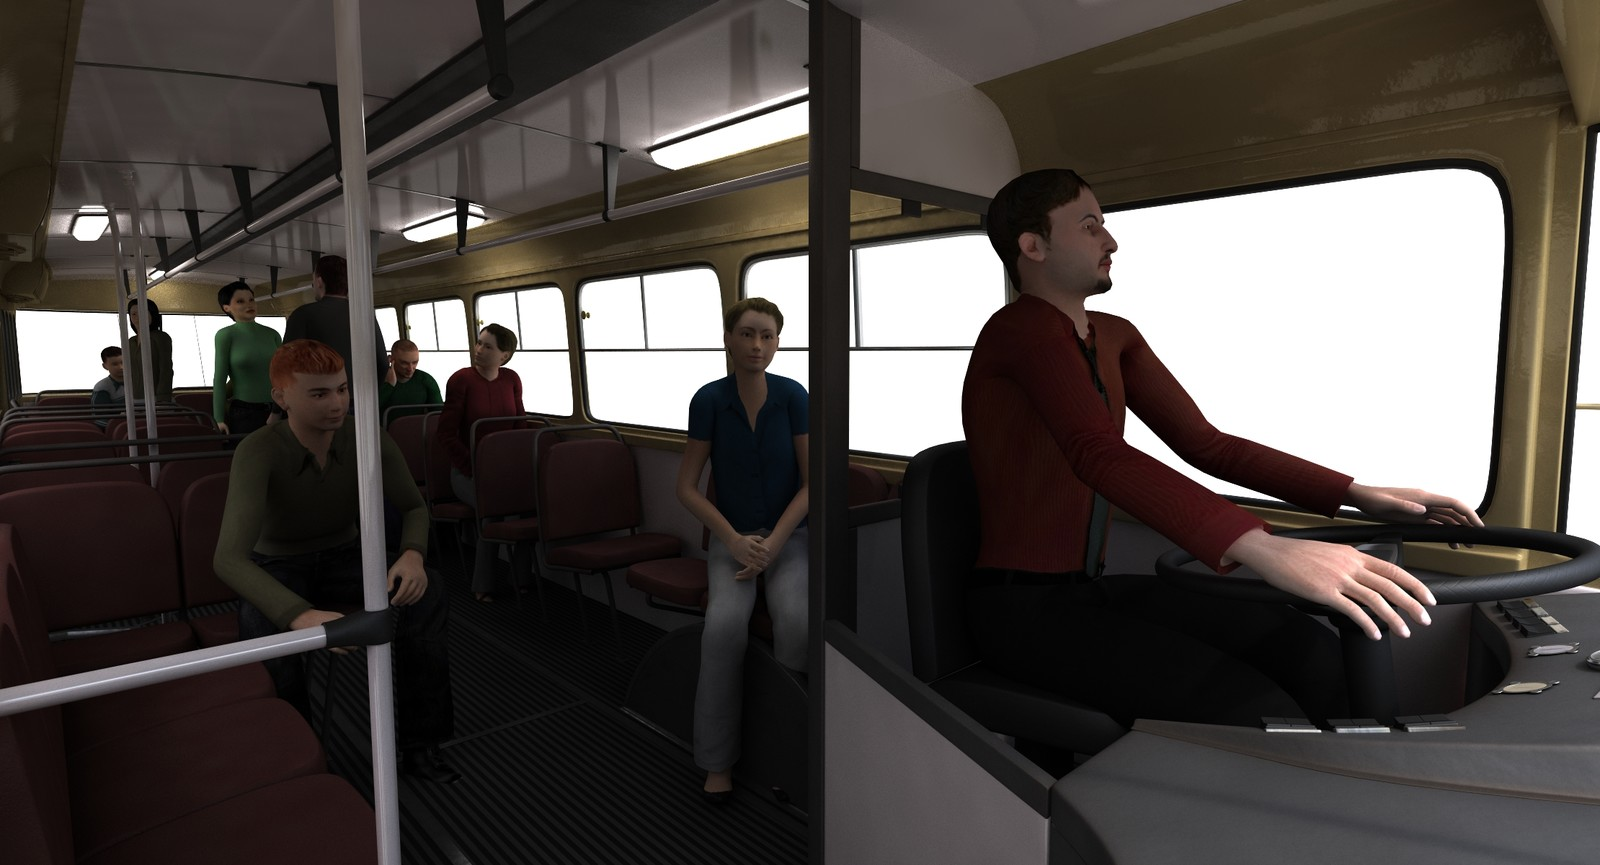 Passengers made with Autodesk Populate